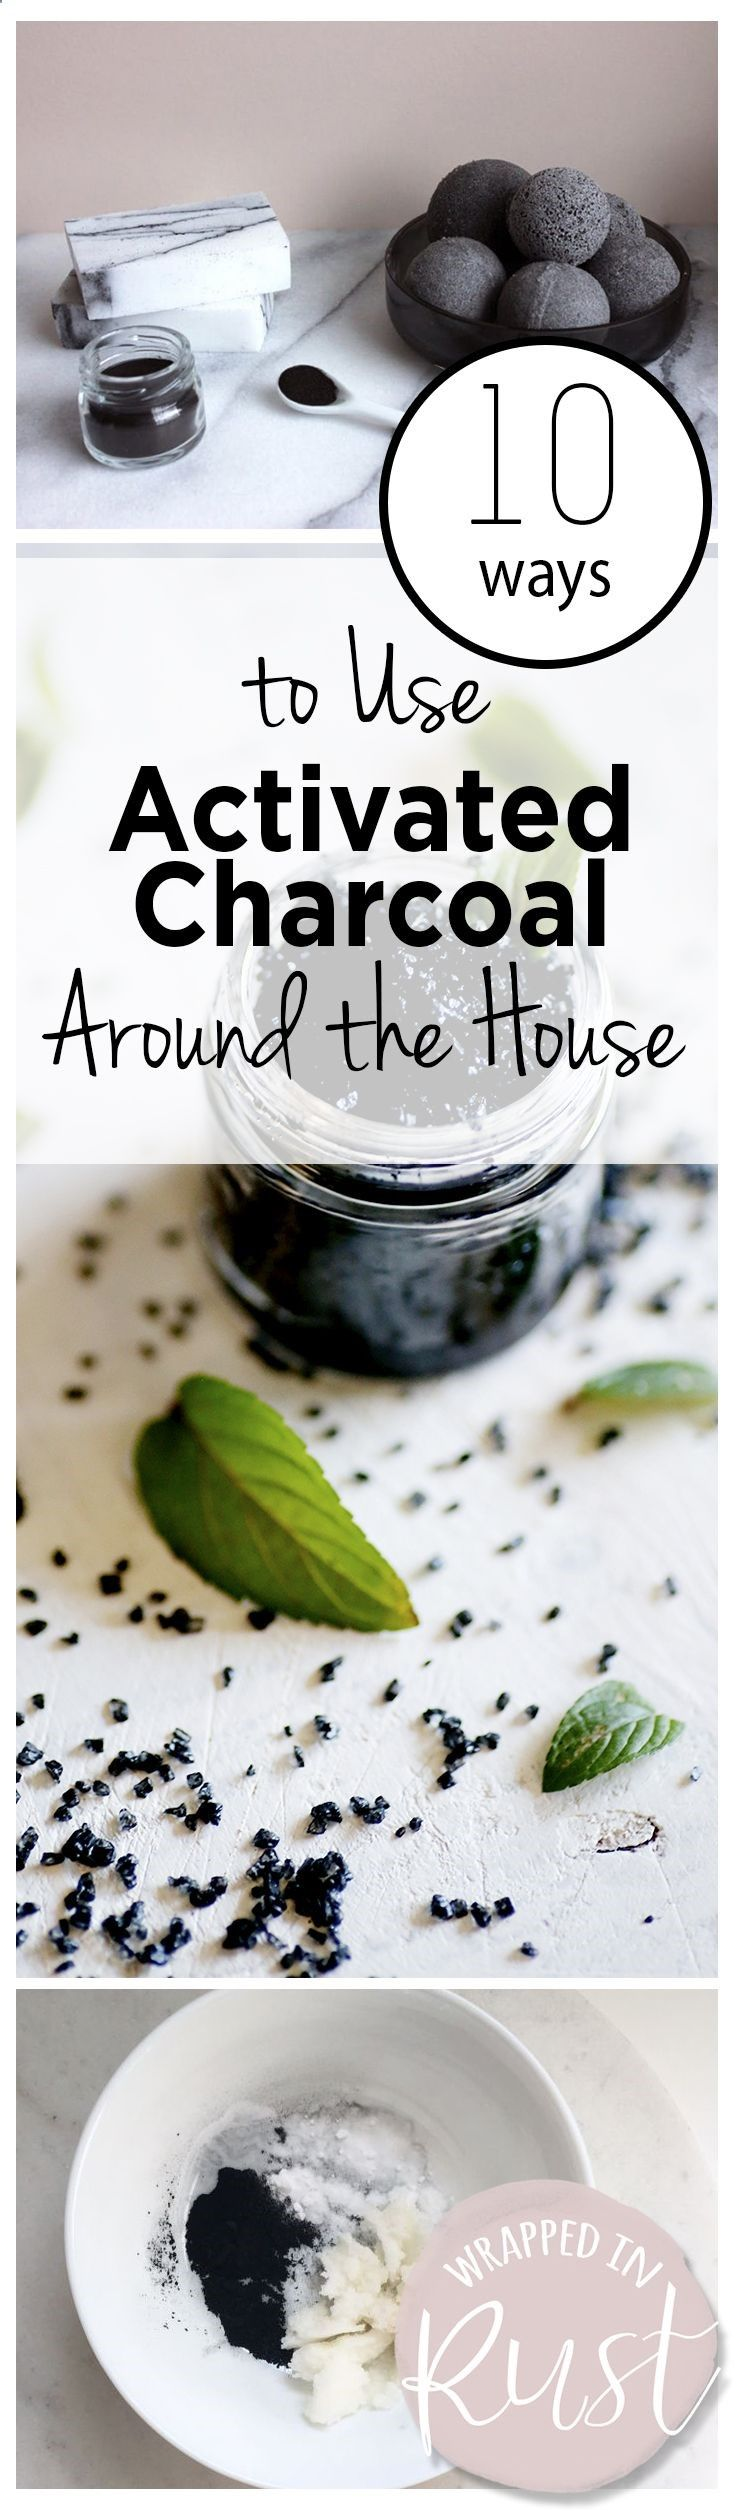 Uses for Activated Charcoal, How to Use Activated Charcoal